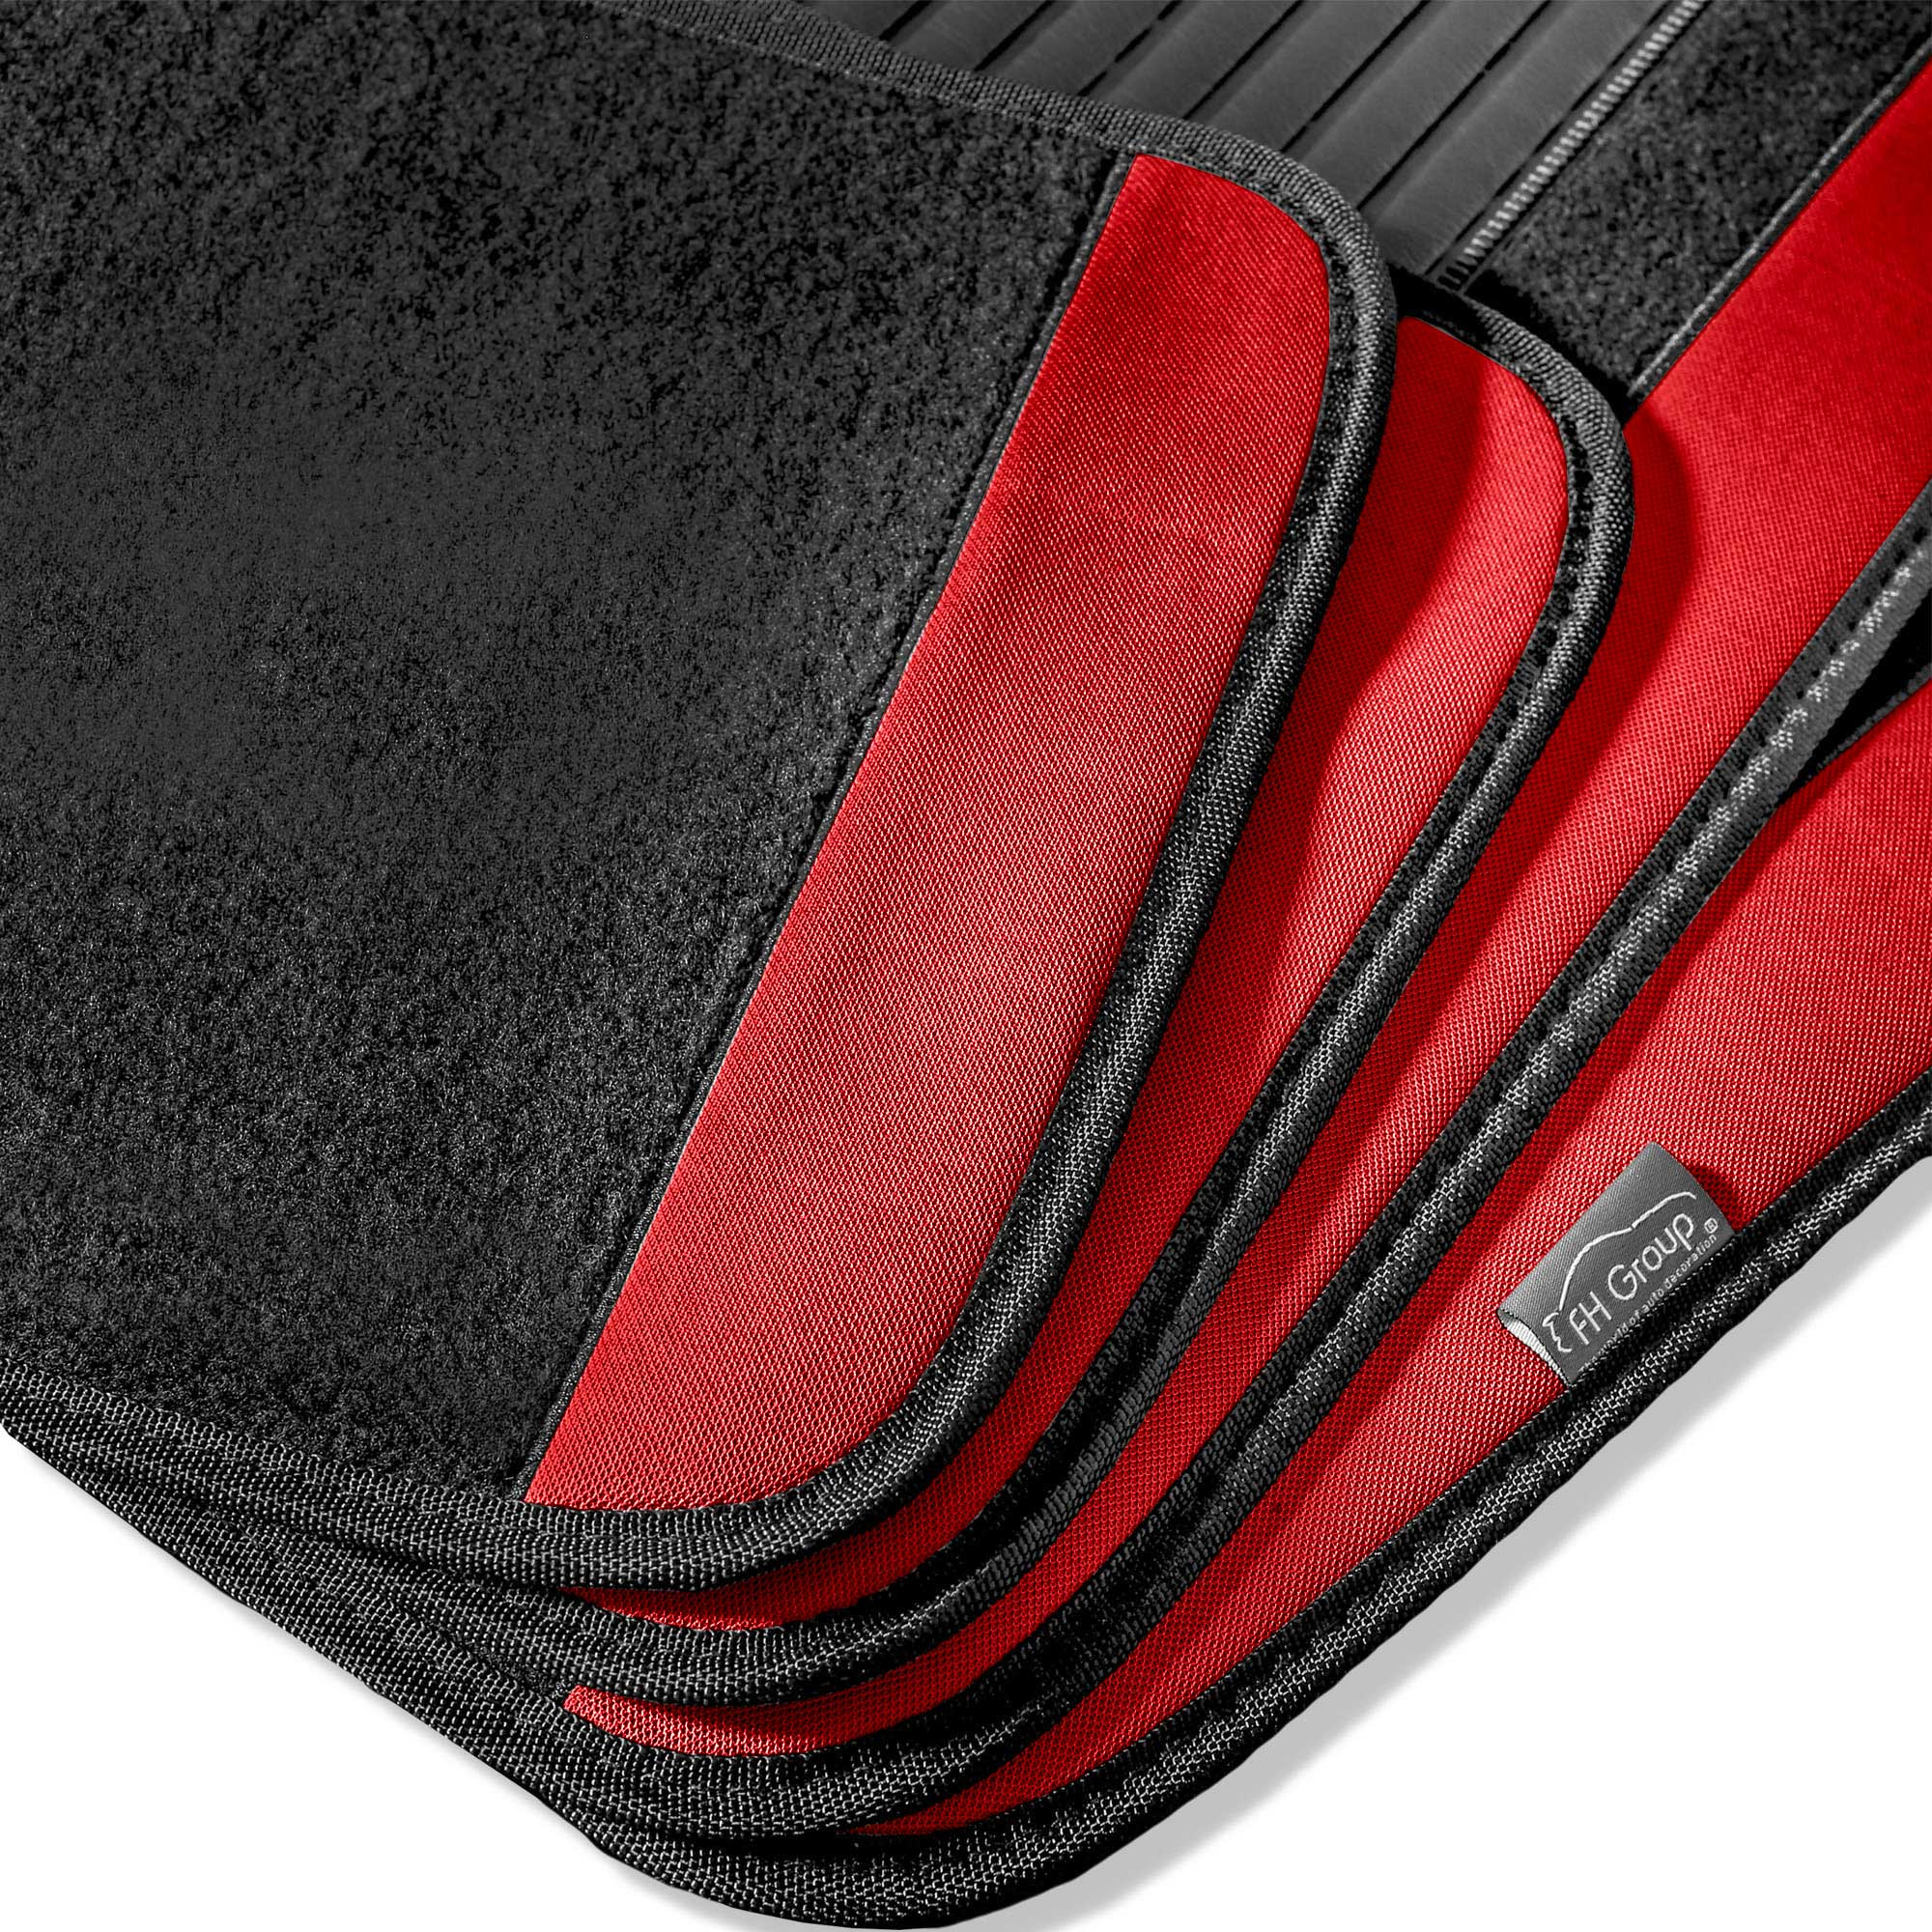 4pcs-Universal-Carpet-Floor-Mats-for-Car-SUV-Van-10-Color-Options-Full-Set thumbnail 57